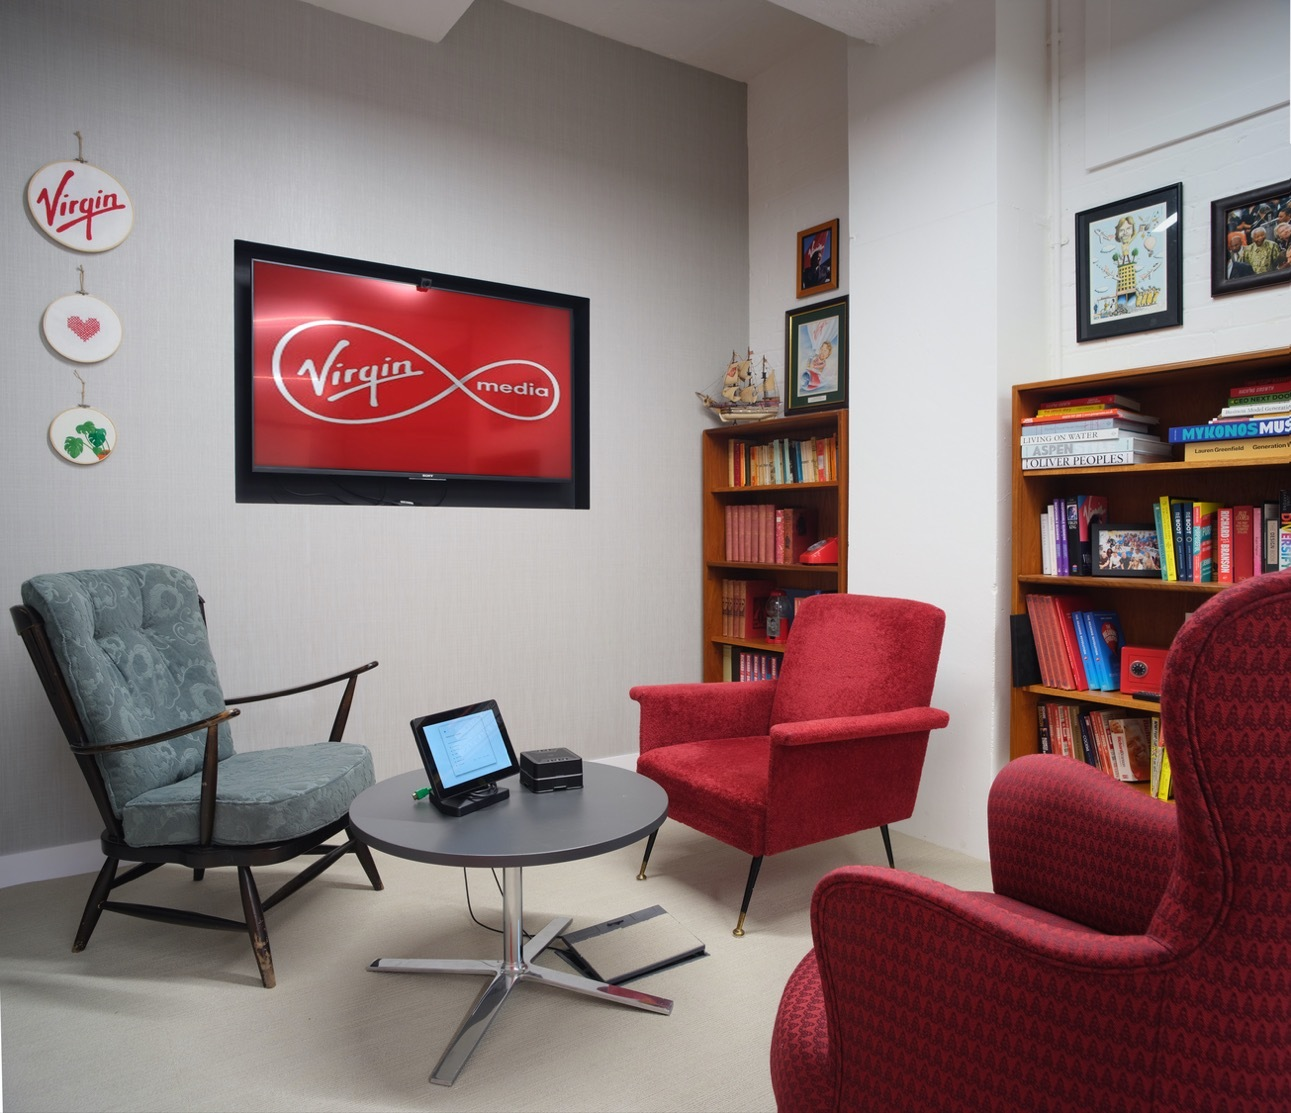 Virgin Red chairs in meeting room design